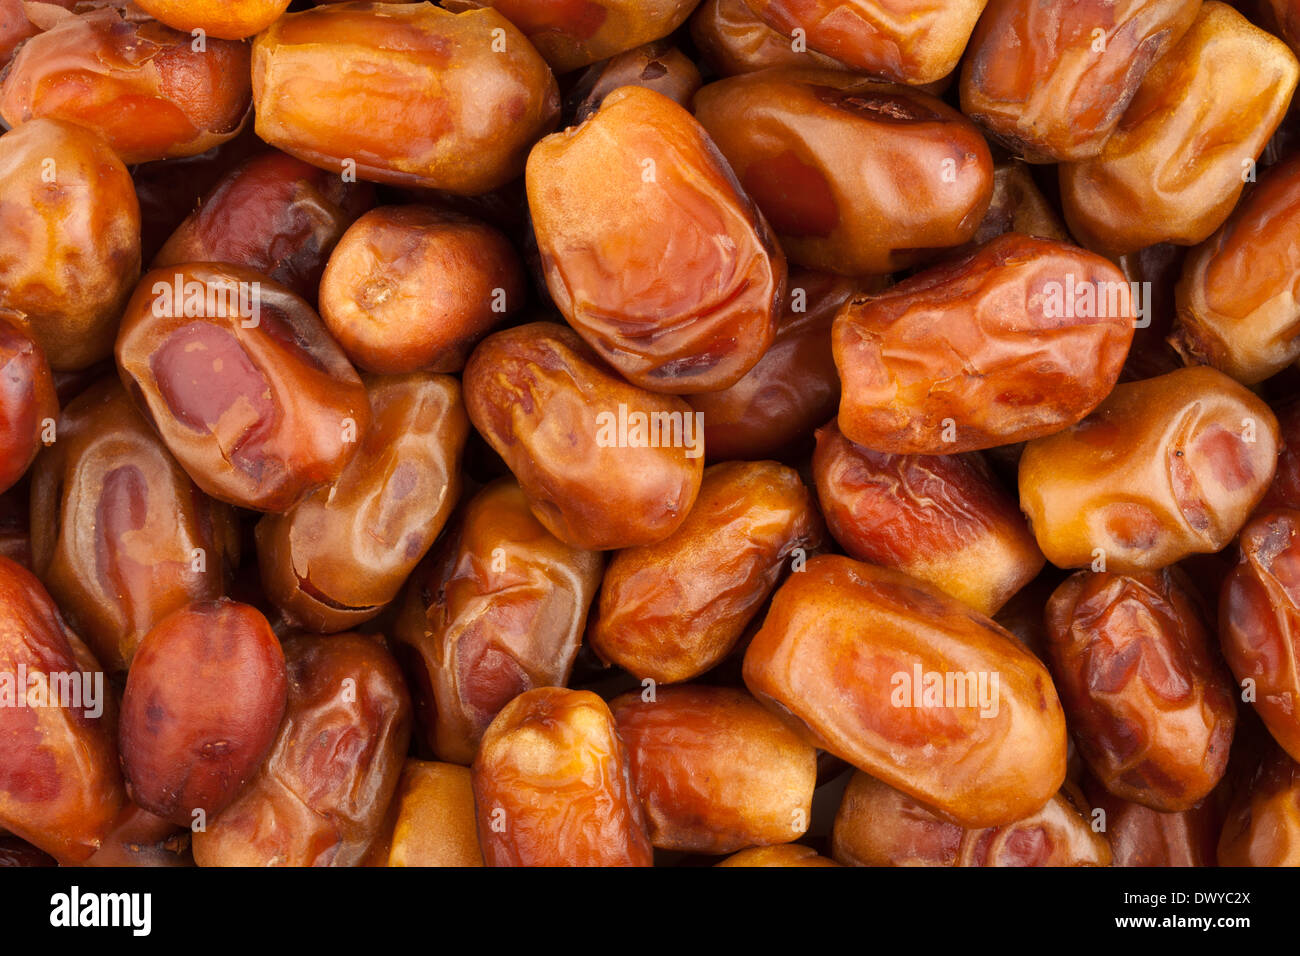 dates fruit background - Stock Image